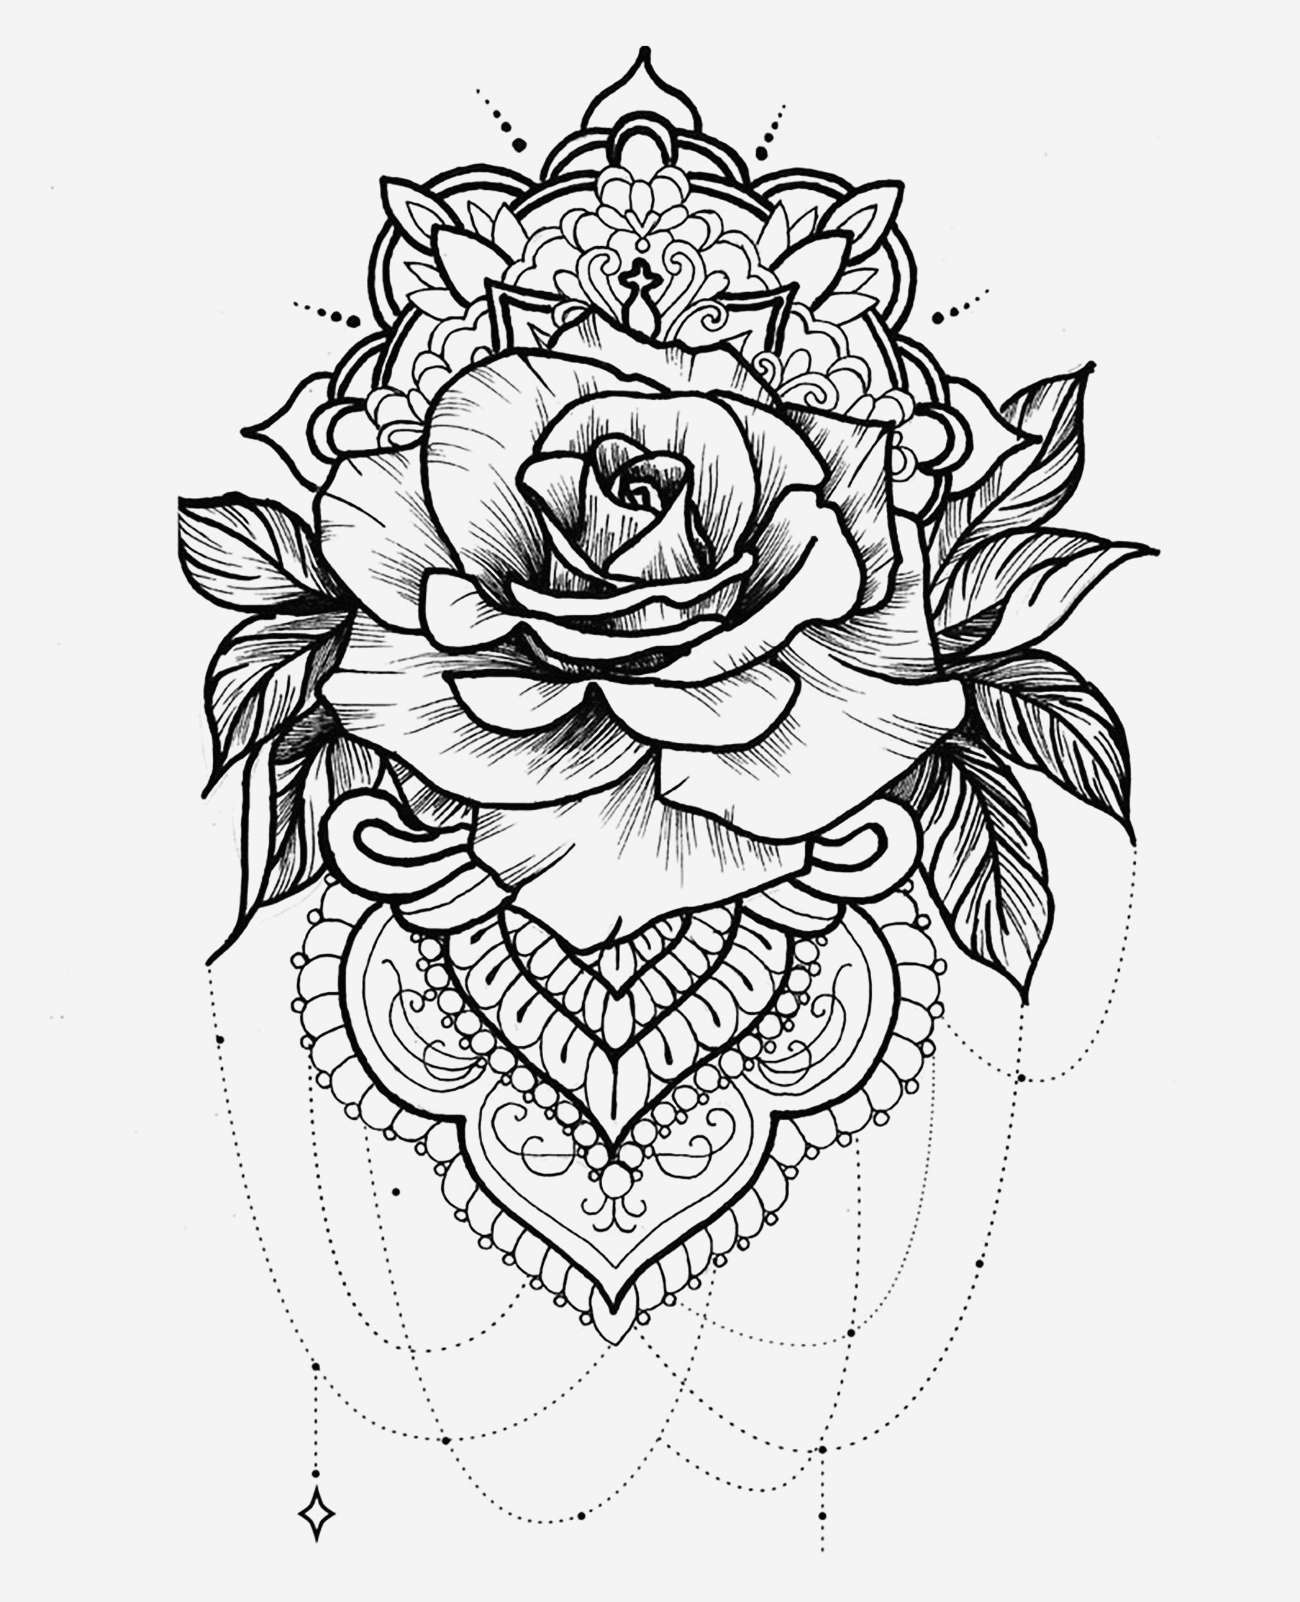 Coloriage Mandala Adulte à Imprimer Luxury Mandala A Telecharger Et Colorier Rose Mandalas Of Coloriage Mandala Adulte à Imprimer